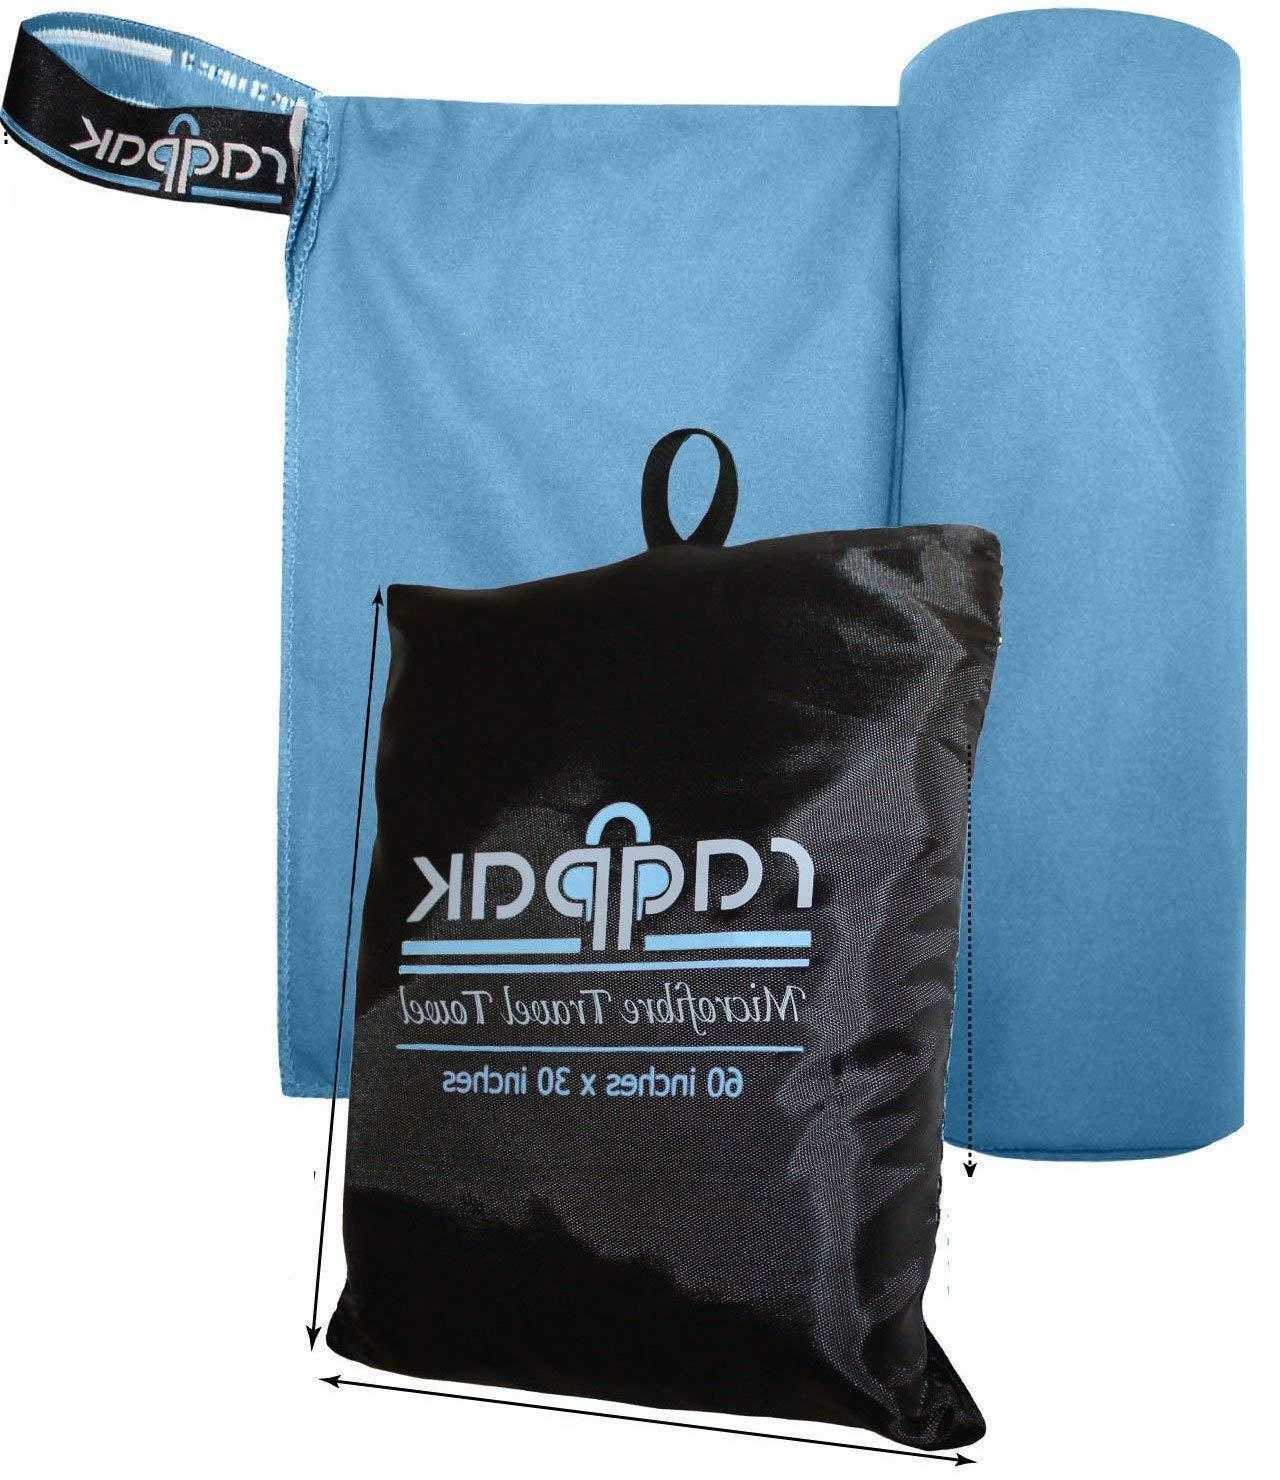 Raqpak Microfiber Towel for Travel, Gym, Camping - Small and